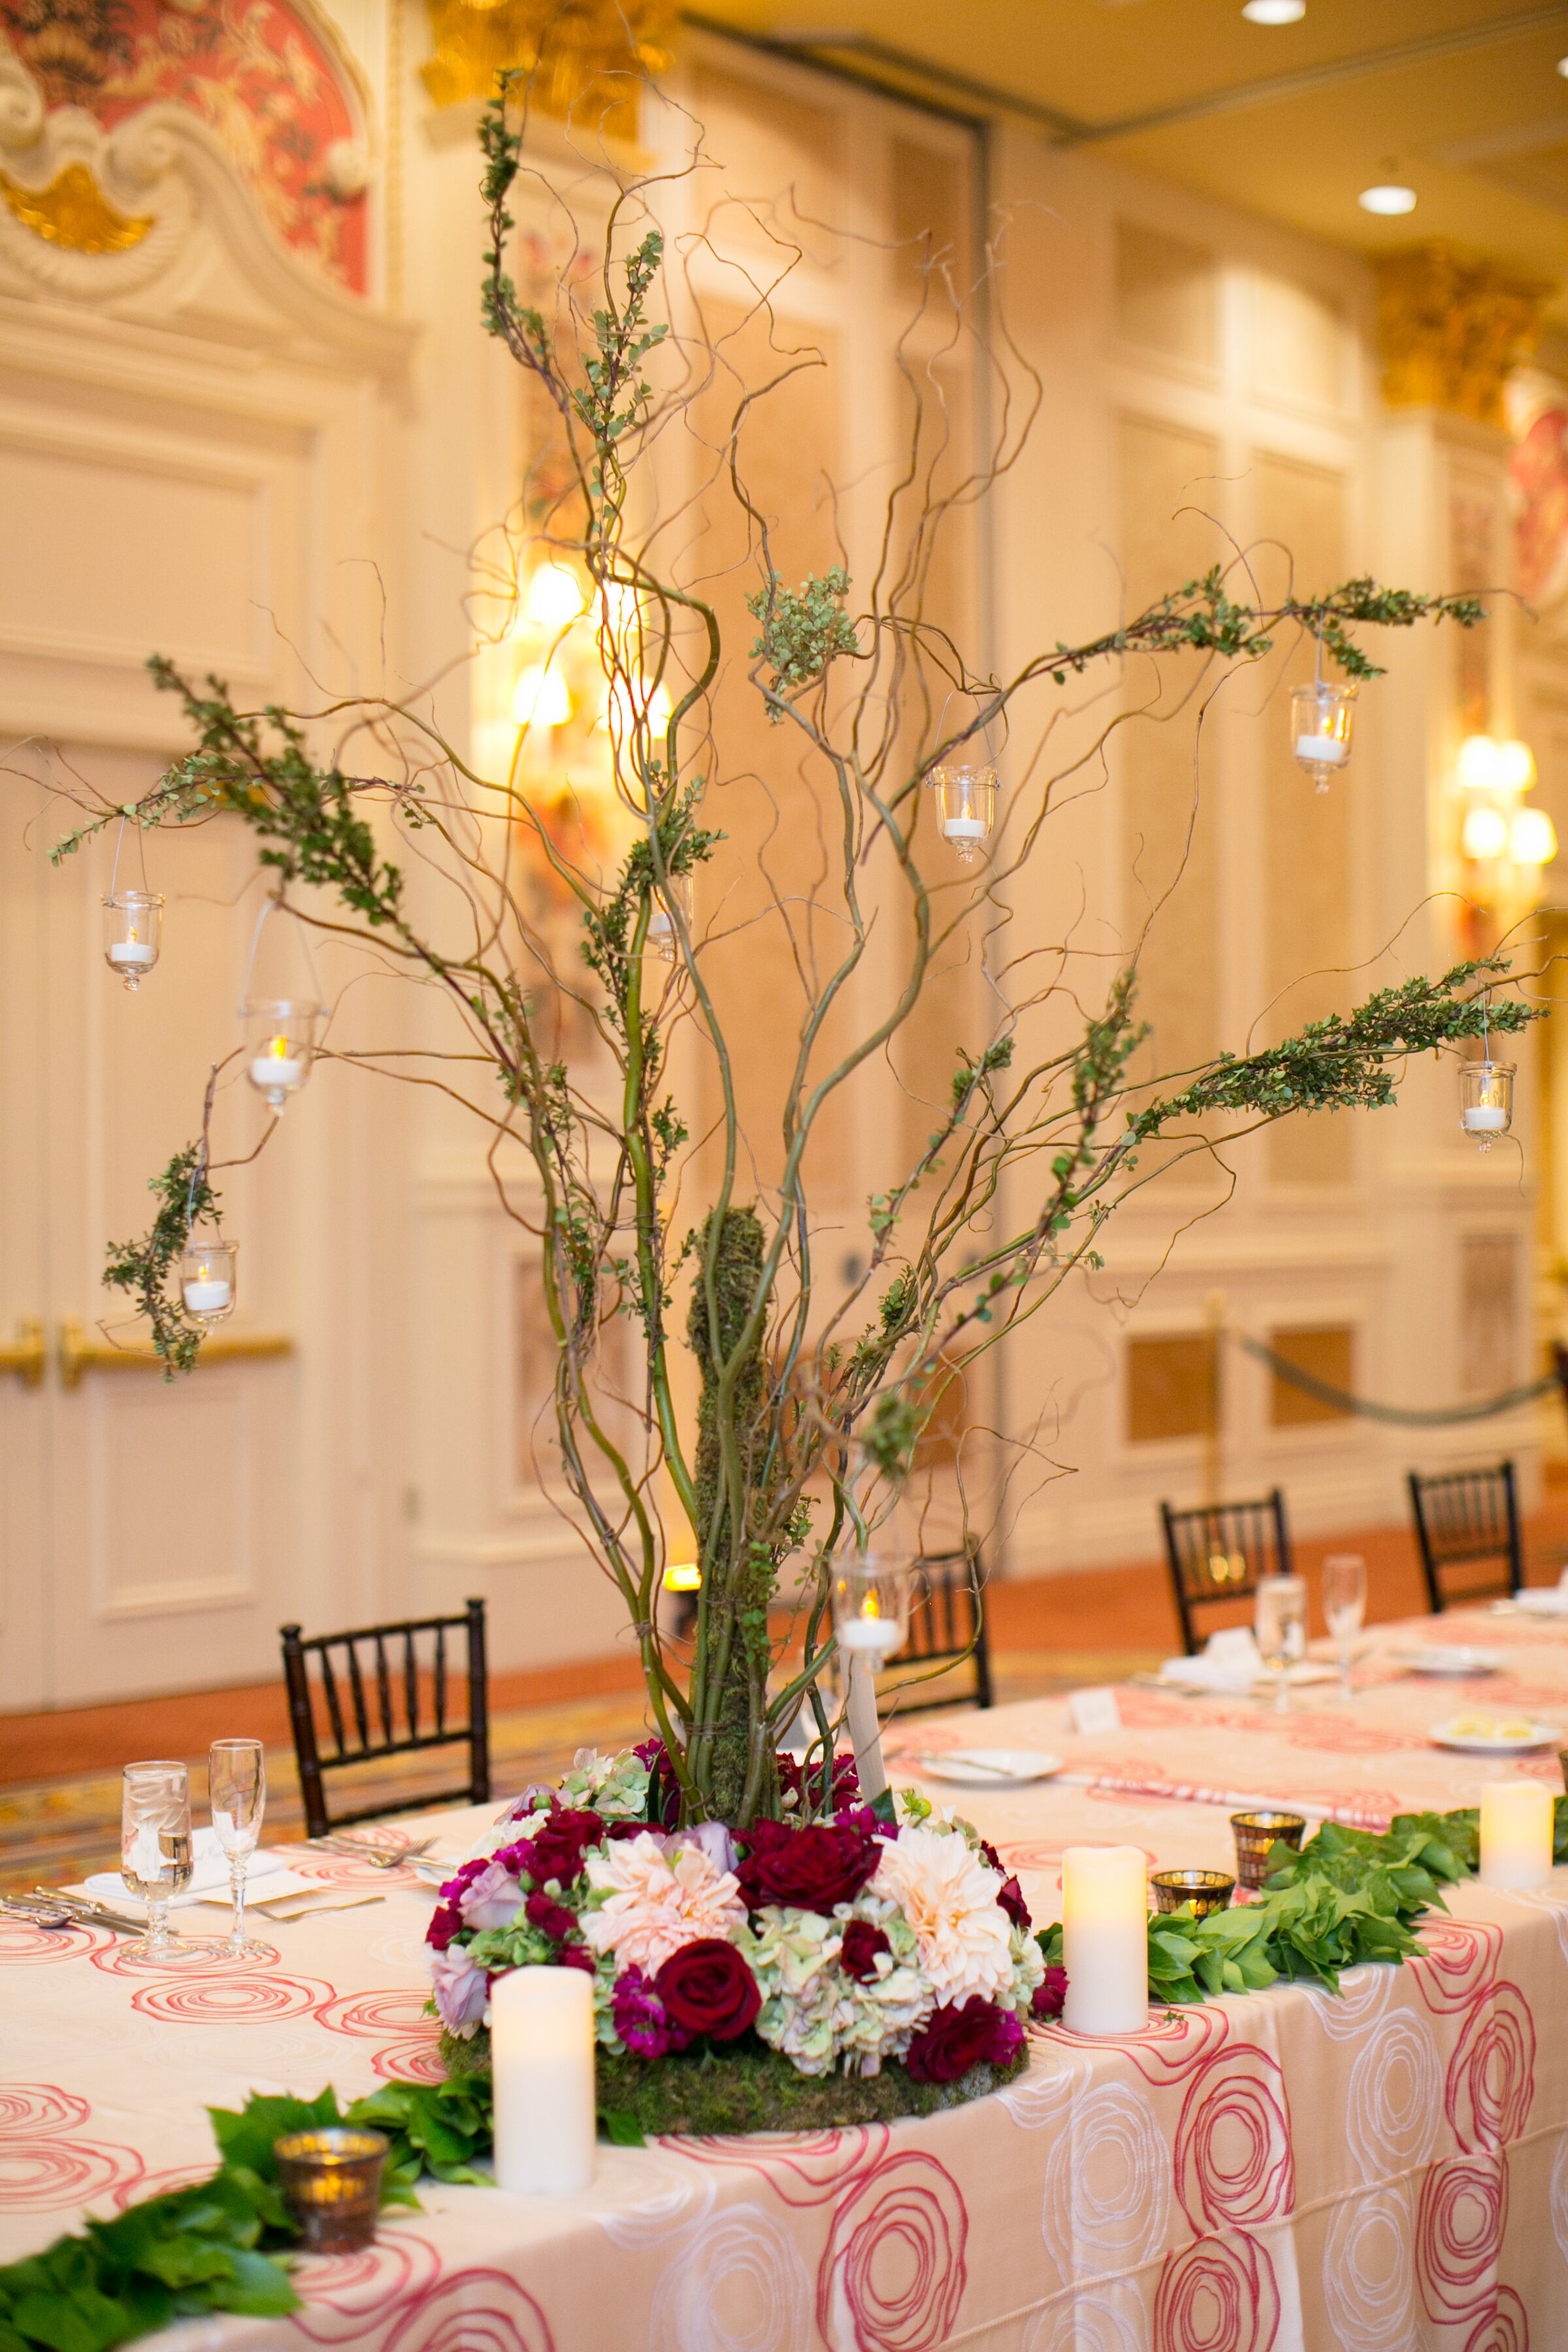 Manzanita branch centerpiece with hanging candles